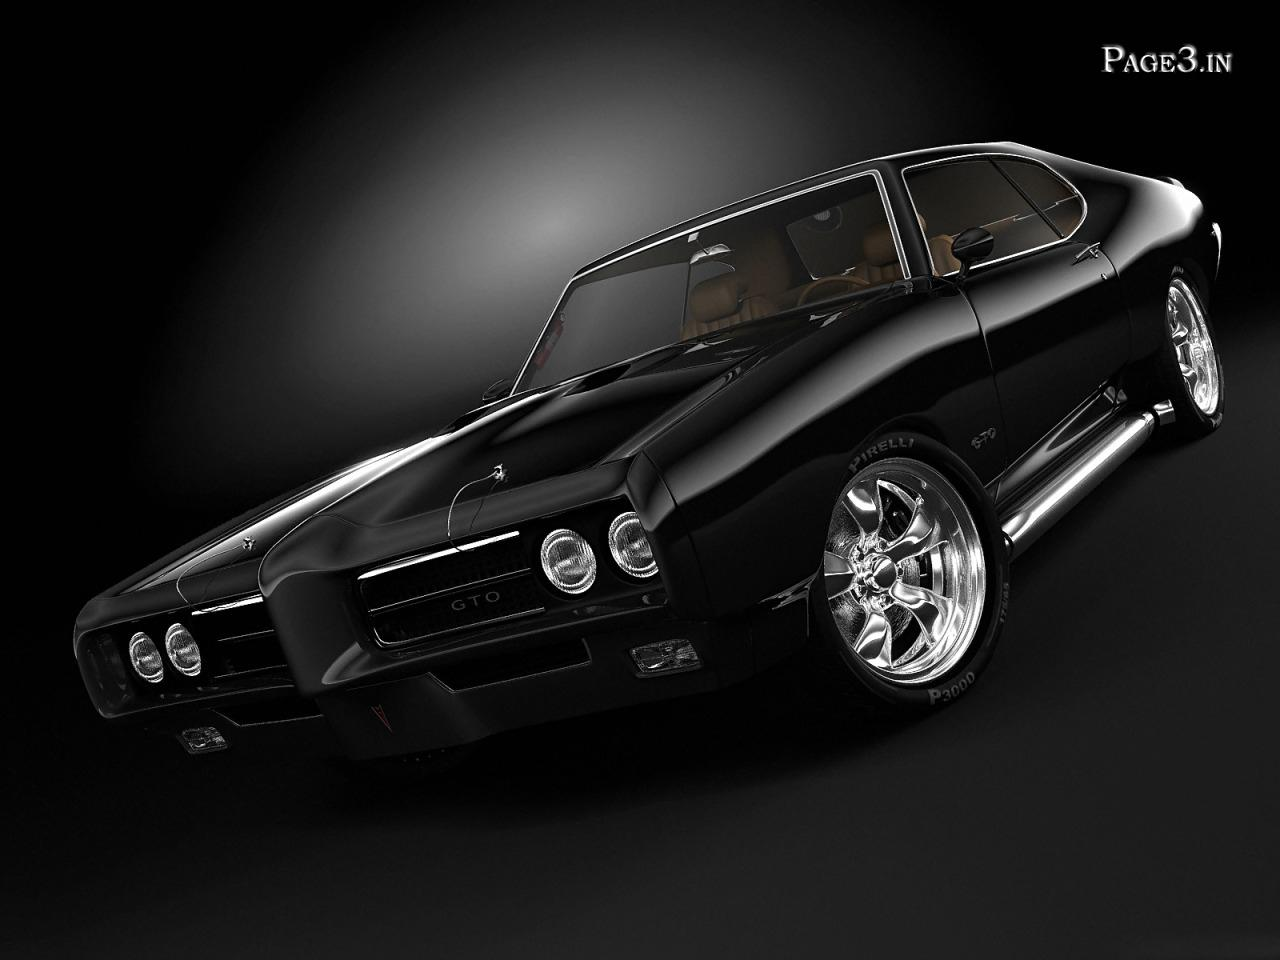 hd car wallpapers cool muscle cars wallpaper - Cool Cars Wallpapers 3d